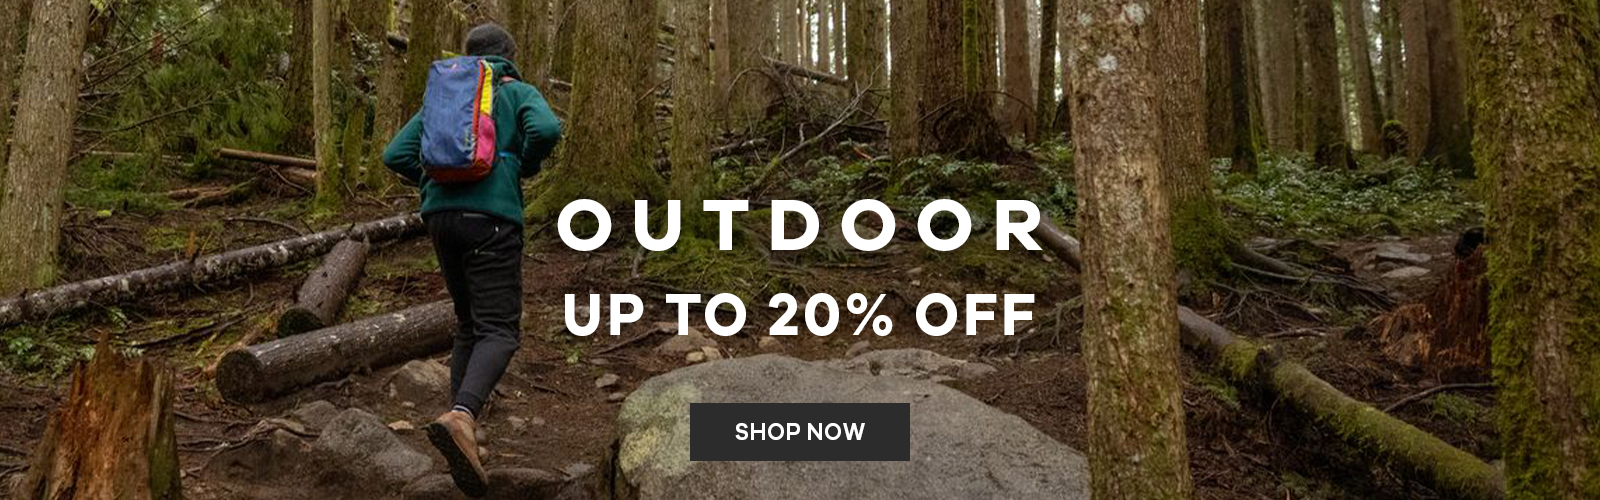 Outdoor   Up to 20% off